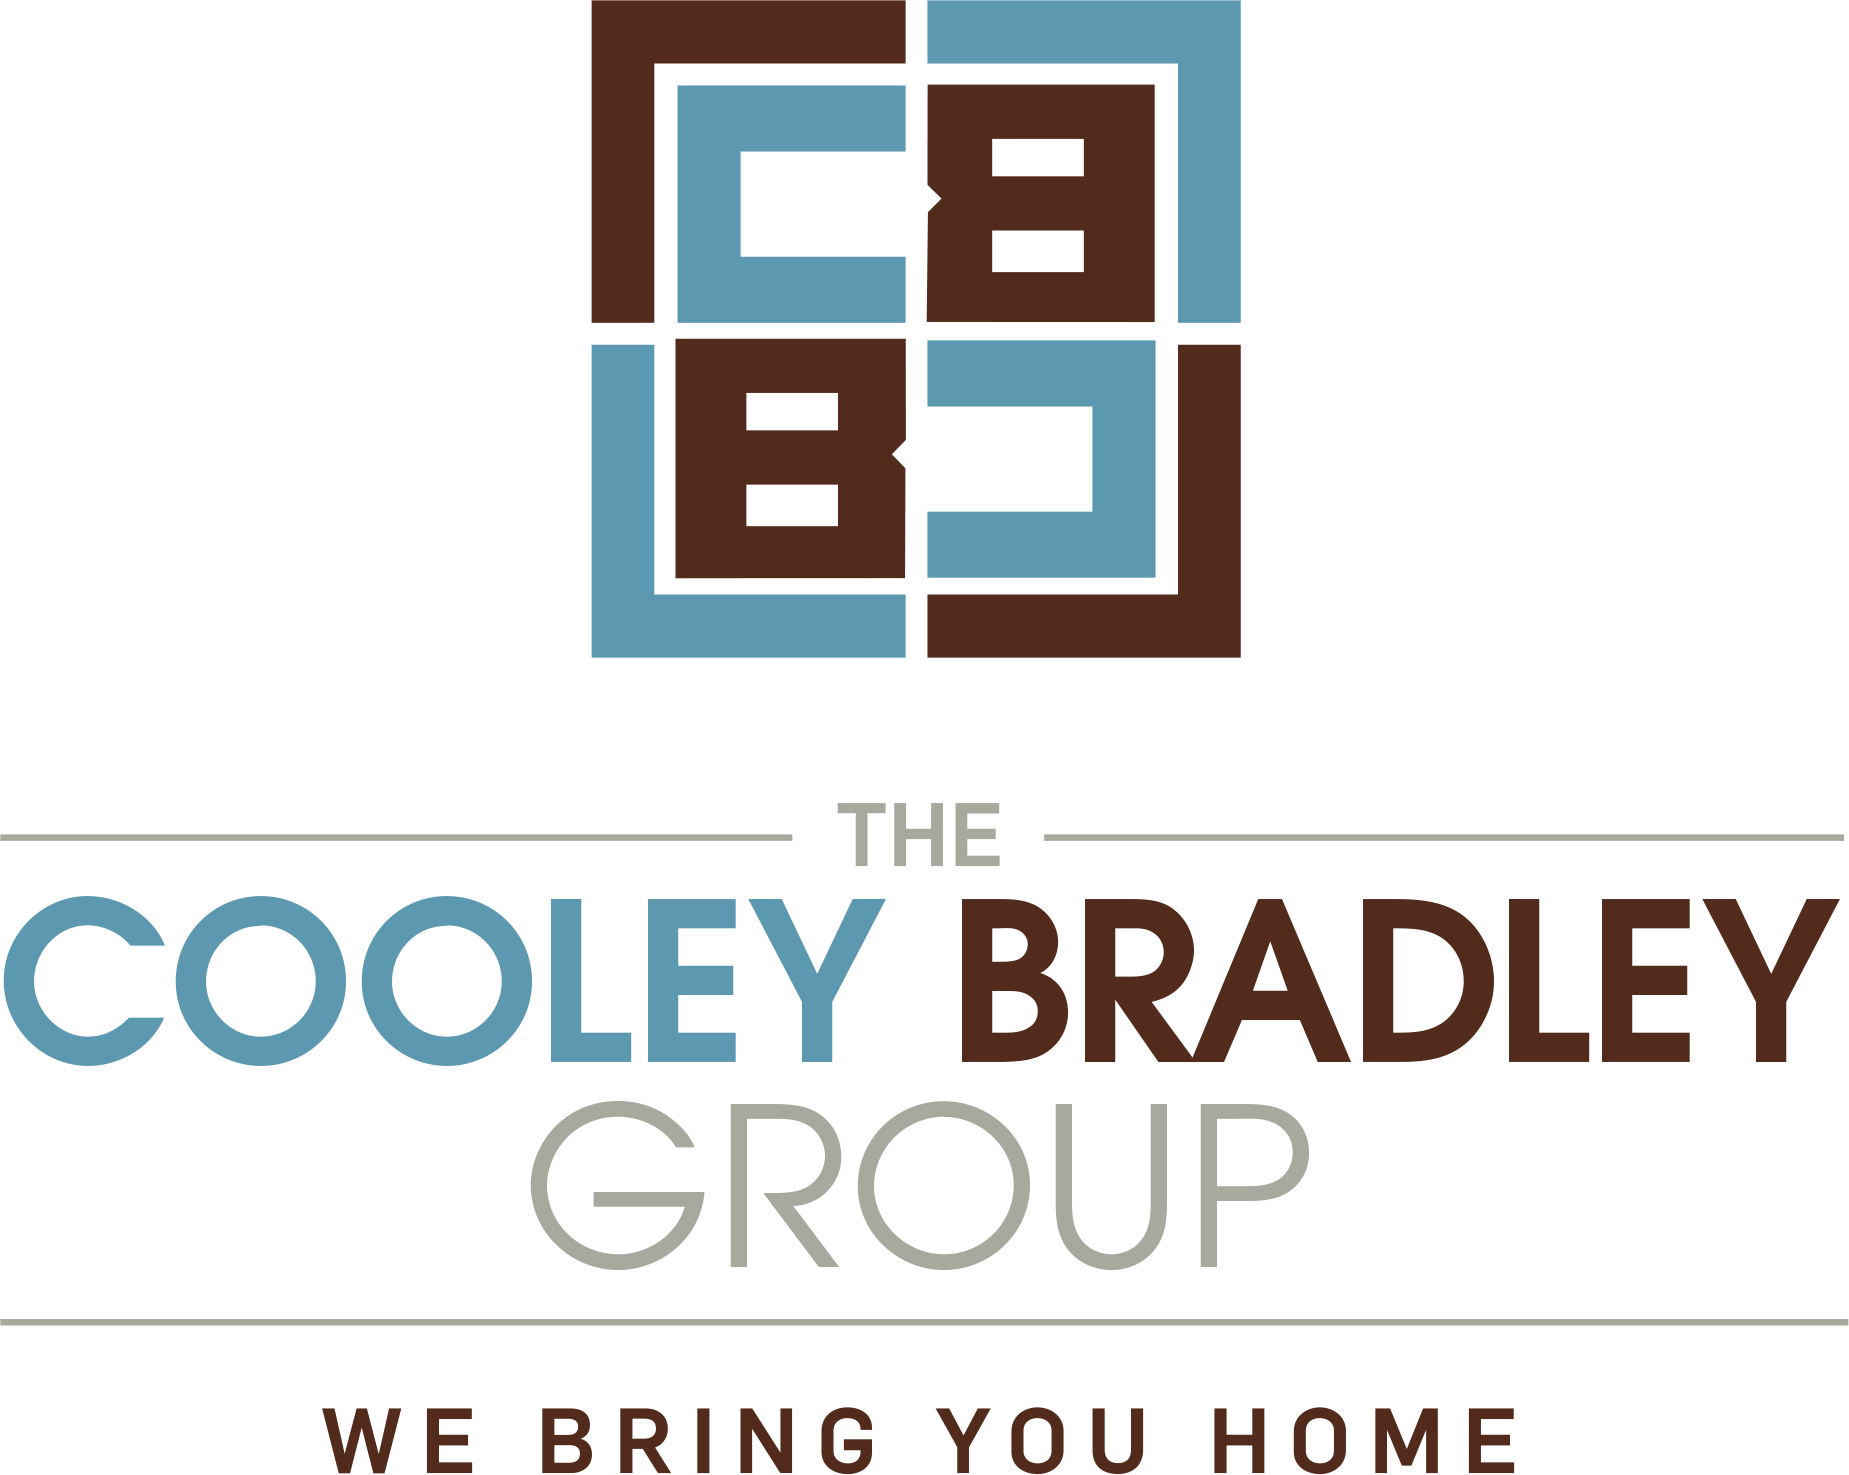 The Cooley Bradley Group